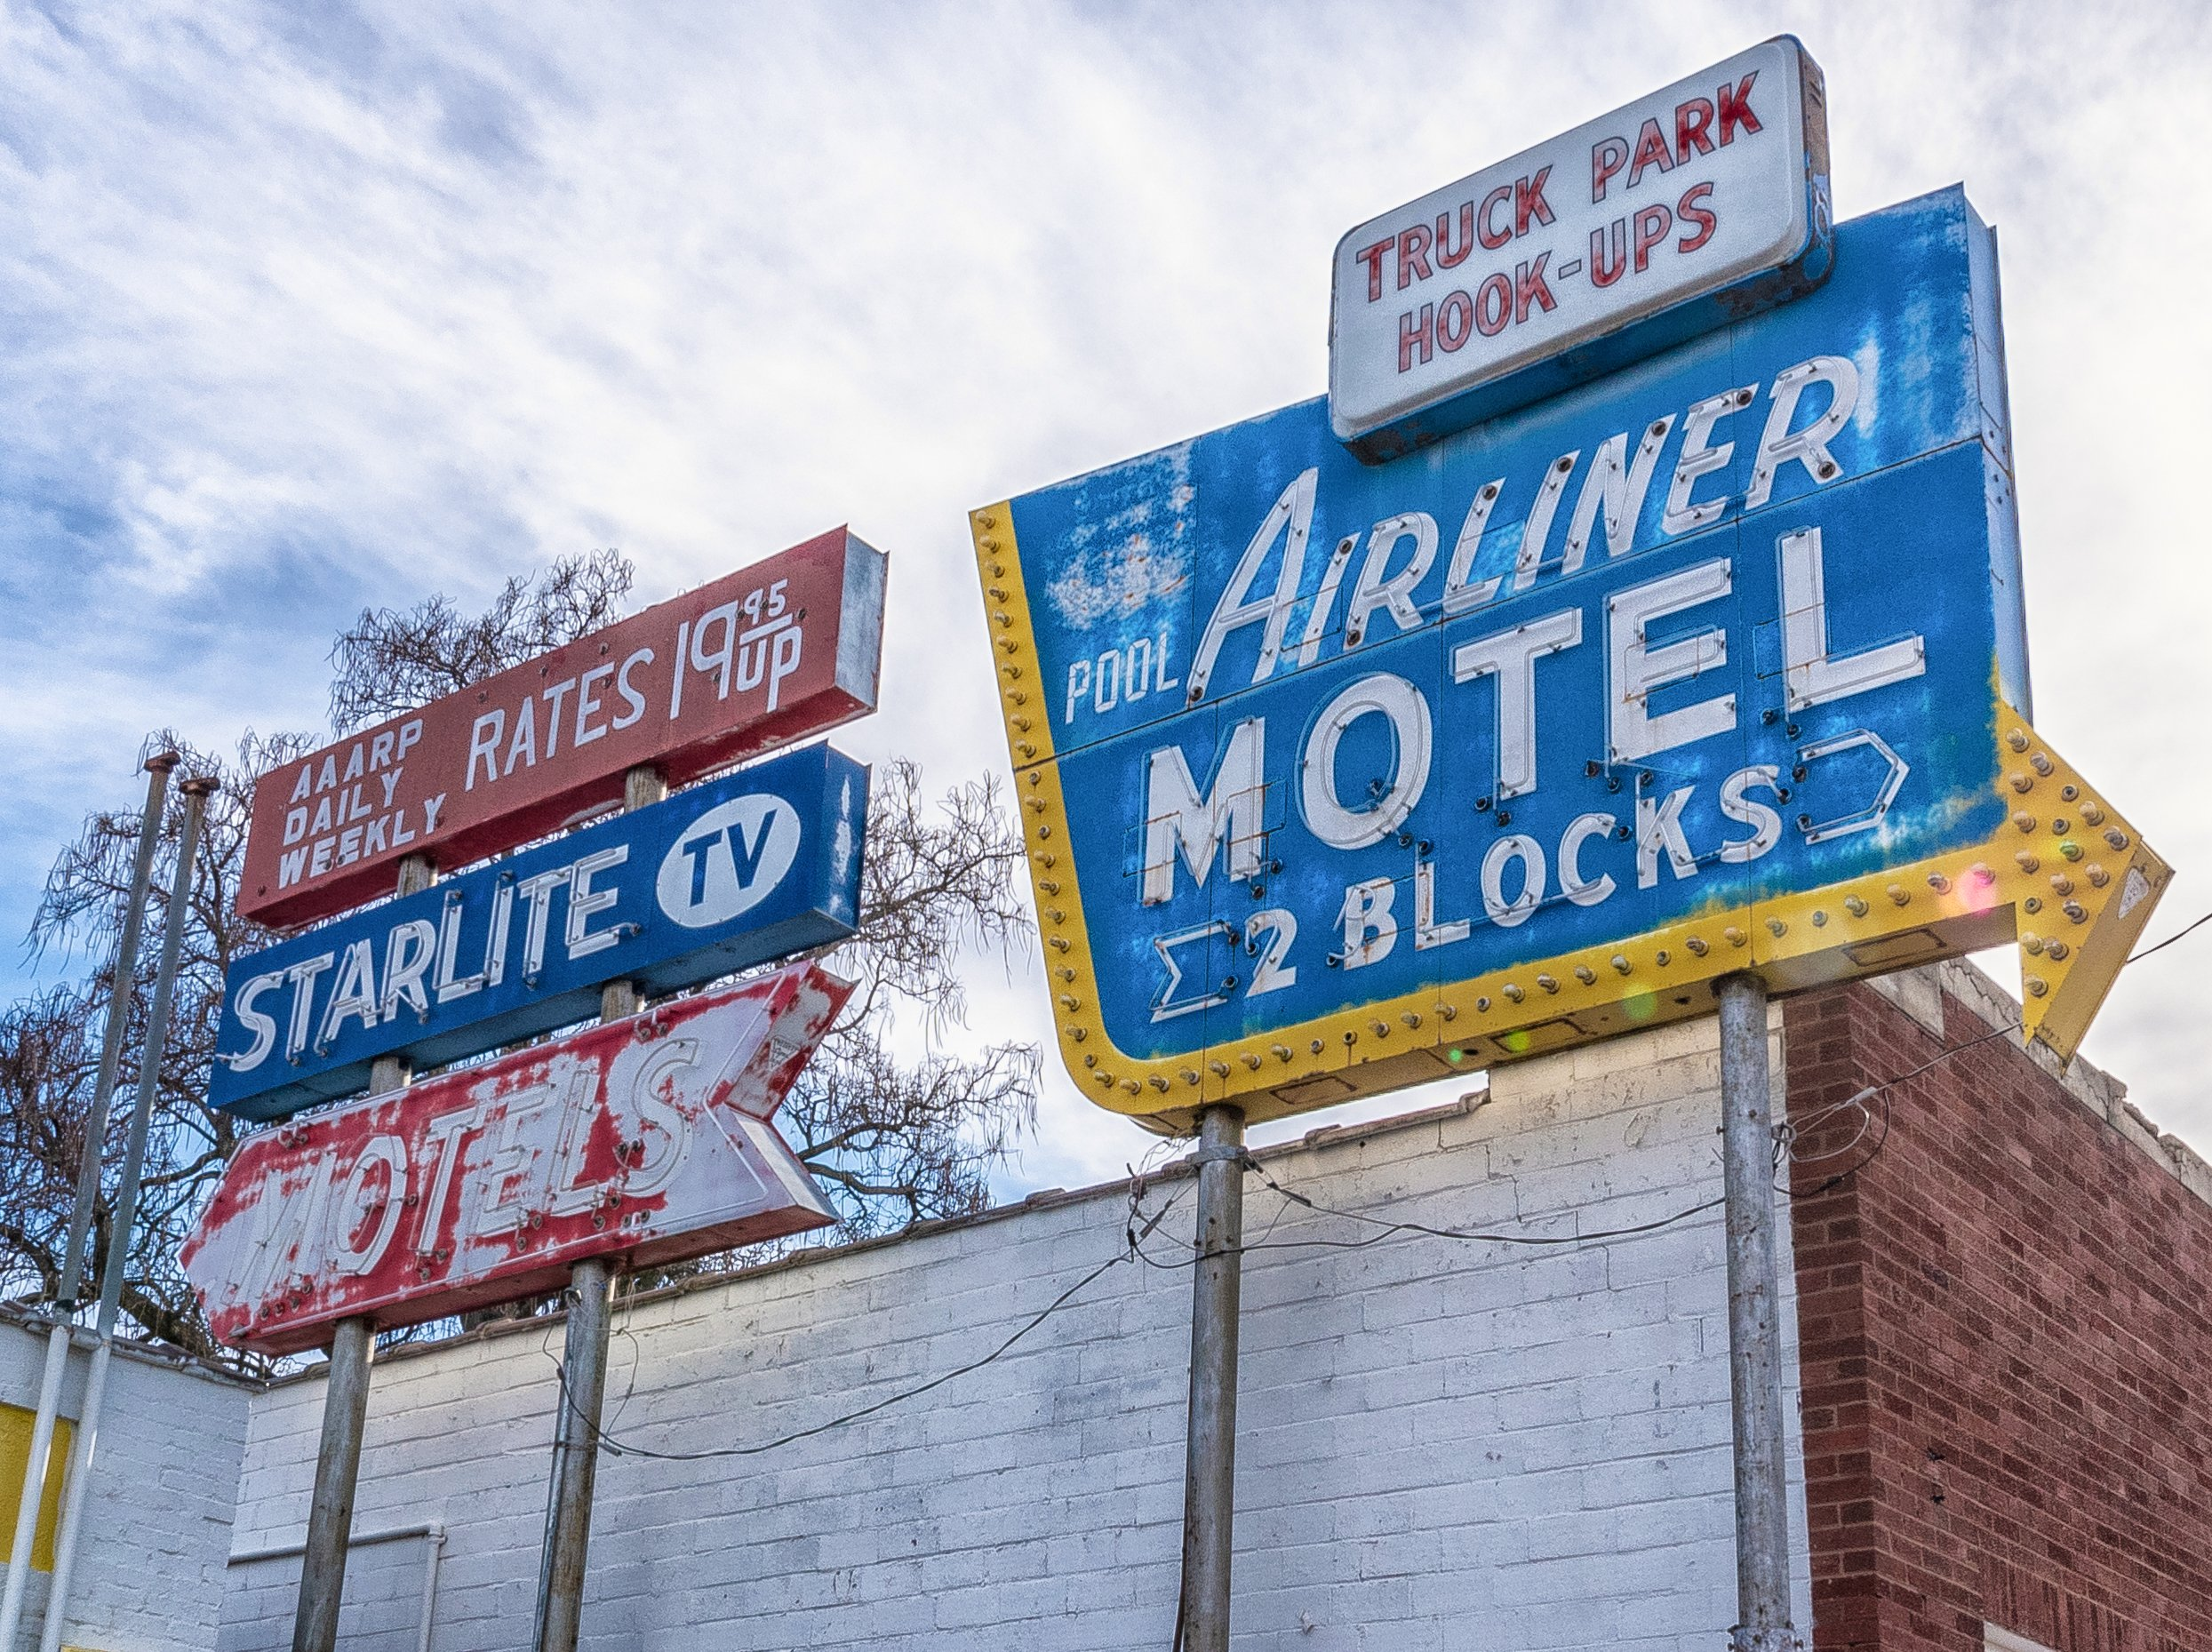 Starlite Motel and Airliner Motel signs - West Pacific Avenue and 9th Street, Salina, Kansas U.S.A. - December 24, 2018